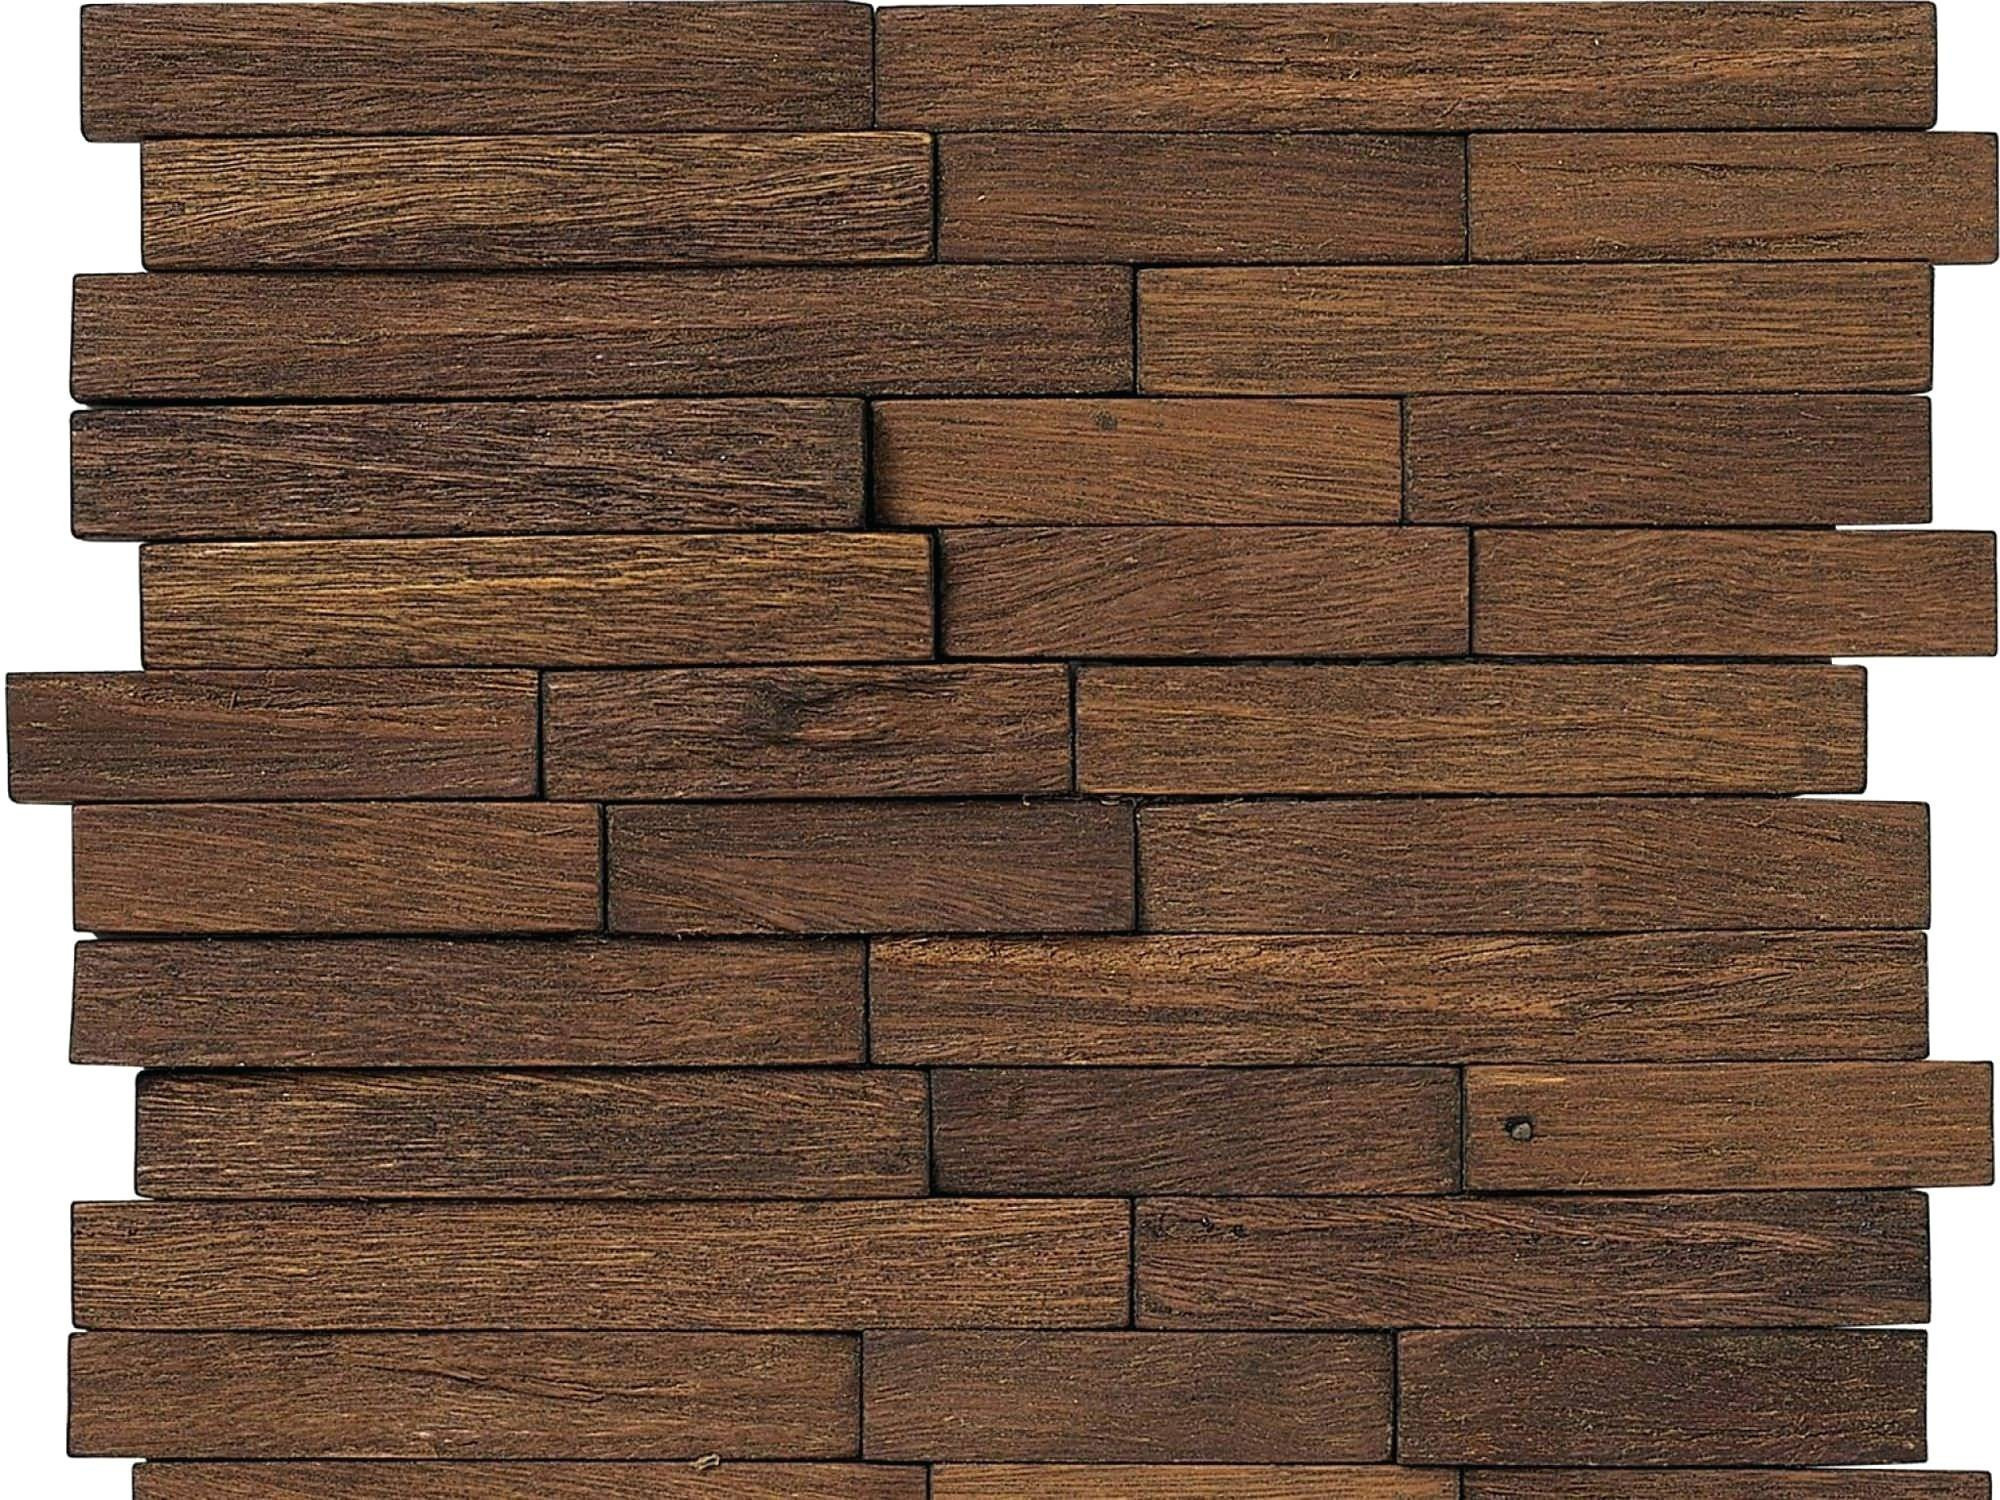 Layout for Hardwood Floor Install Of the Wood Maker Page 2 Wood Wallpaper Regarding Floor Patterns New Metal Wall Art Panels Fresh 1 Kirkland Wall Decor Home Design 0d Ideas Of Wood